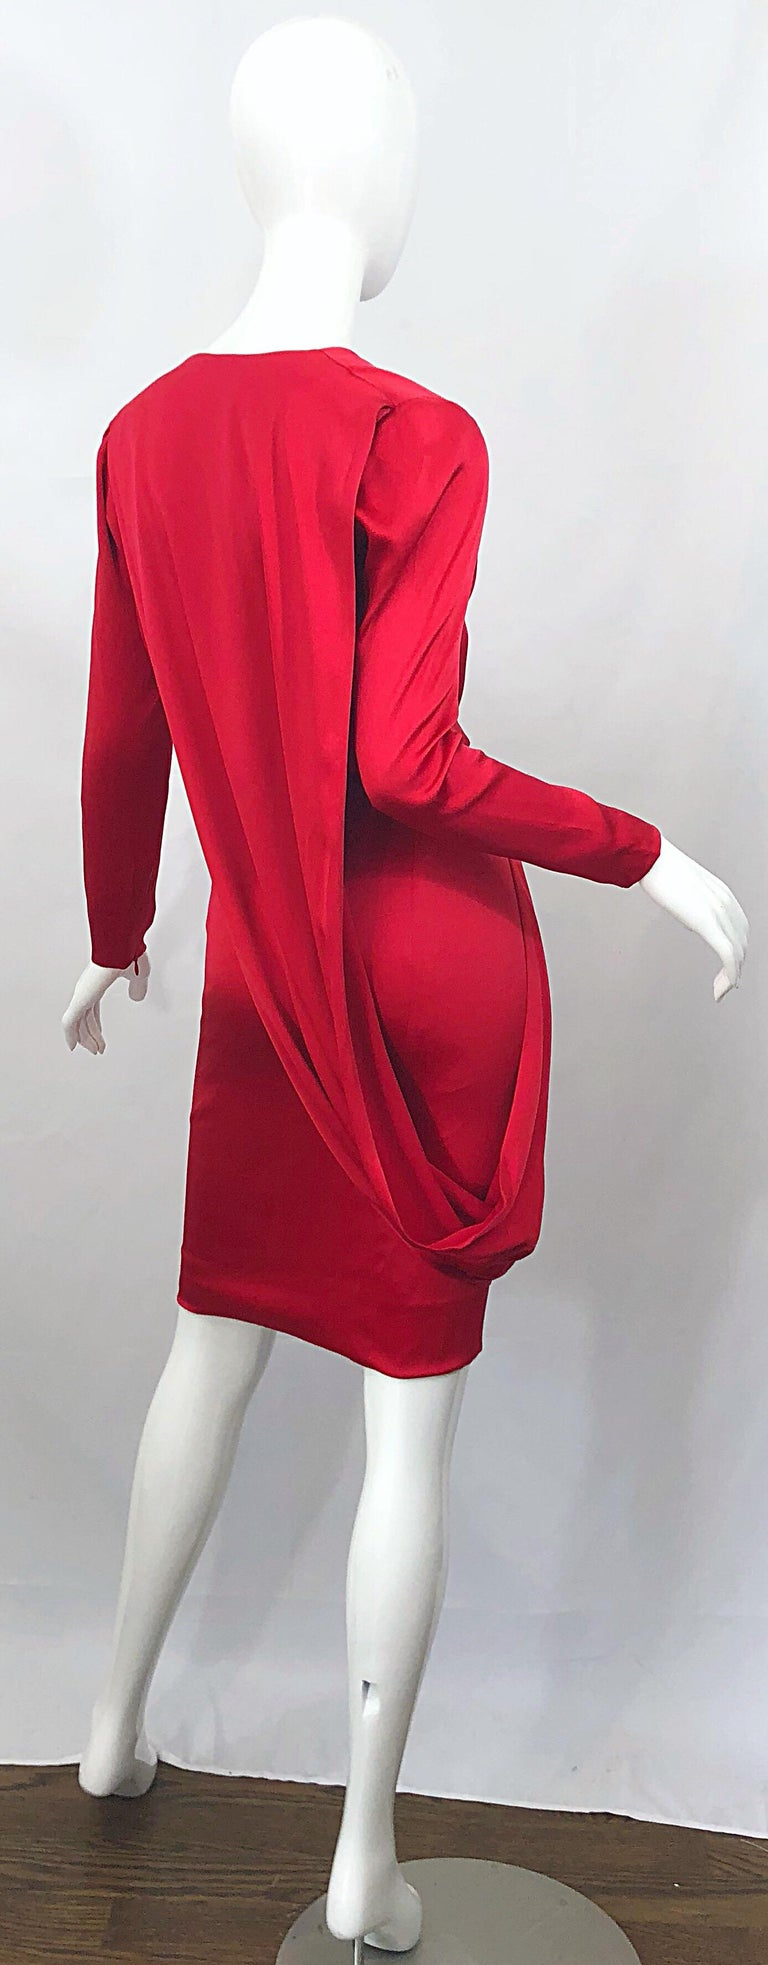 Vintage Givenchy Couture by Alexander McQueen Sz 36 Lipstick Red Silk Cape Dress For Sale 7